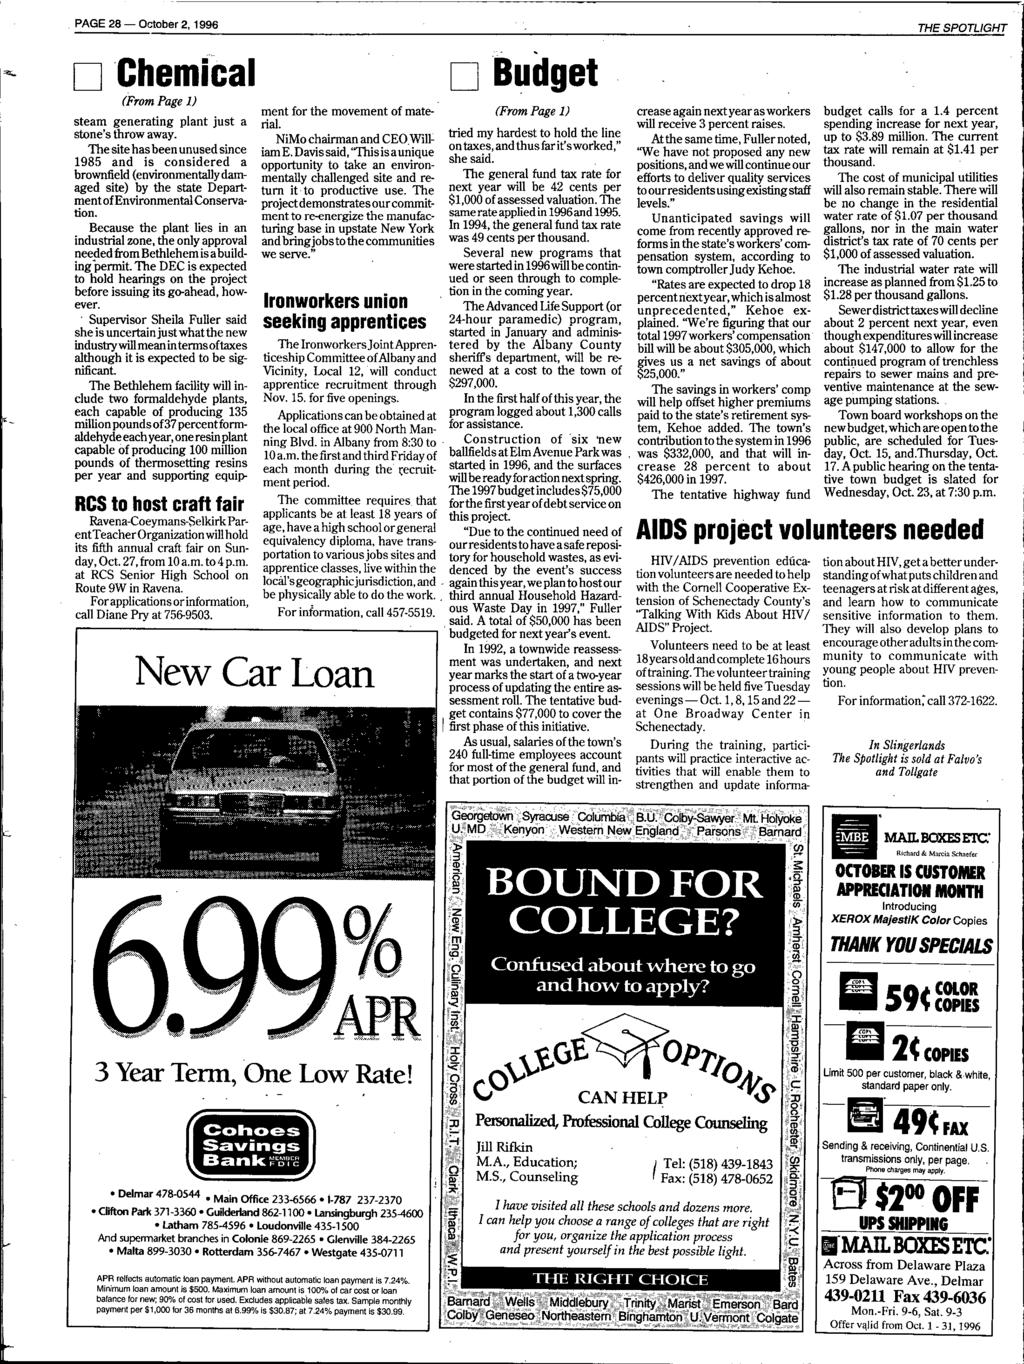 Tree To Return Bethlehem Library Committee Restores Revises Old Jeep Patriot Fuse Box Cavity Numbers I Page 28 October 2 1996 D Chemical From 1